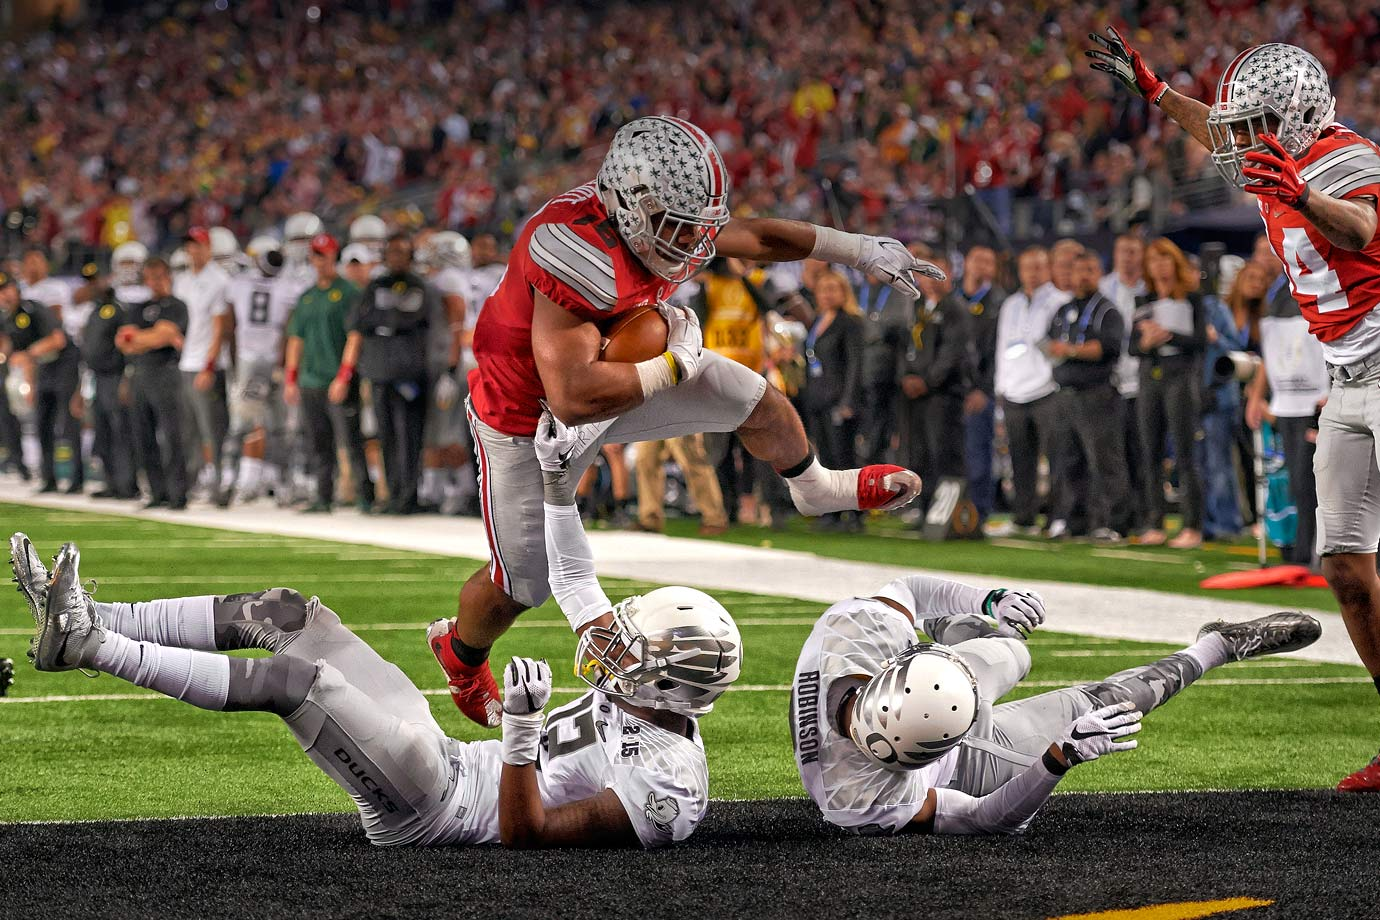 No player shined brighter on the biggest stage than the Buckeyes RB, who had 488 yards in the playoff.